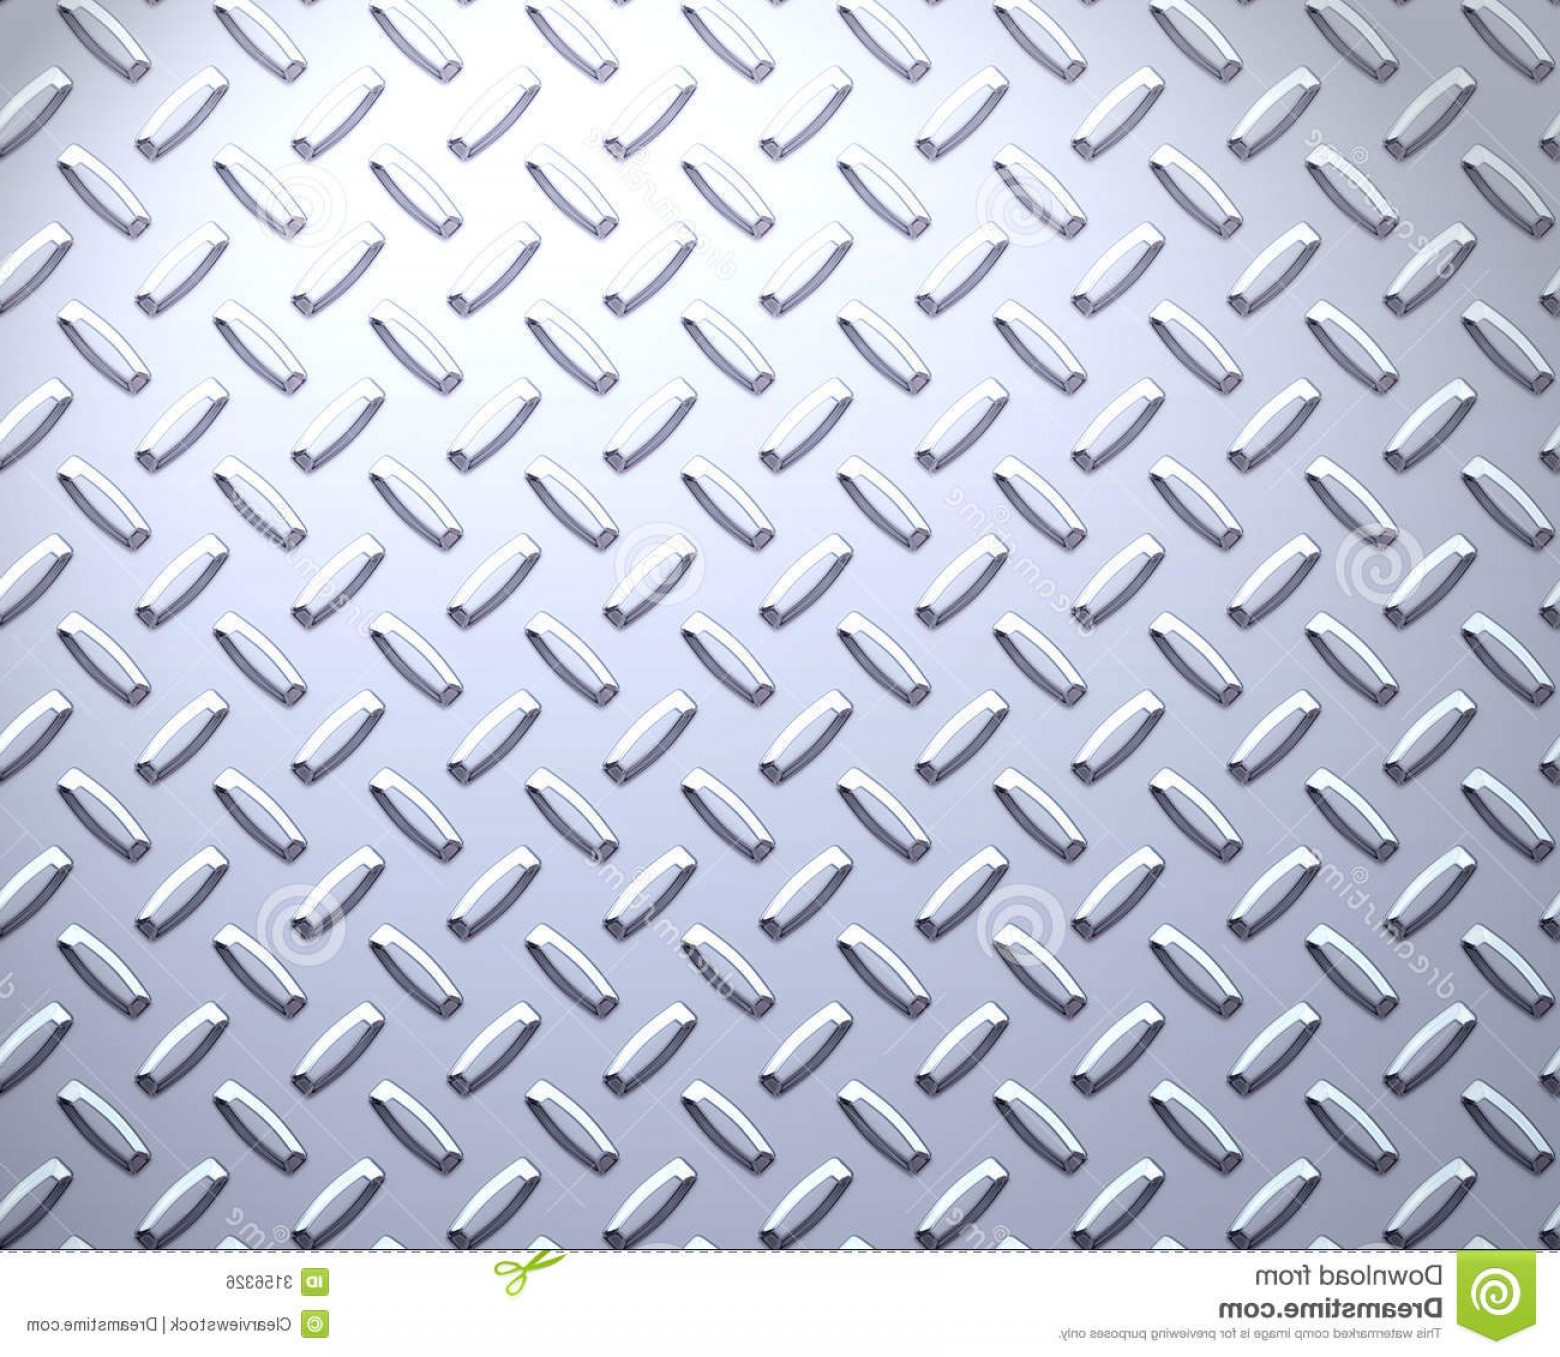 Tread Plate Vector: Royalty Free Stock Image Strong Steel Diamond Plate Image